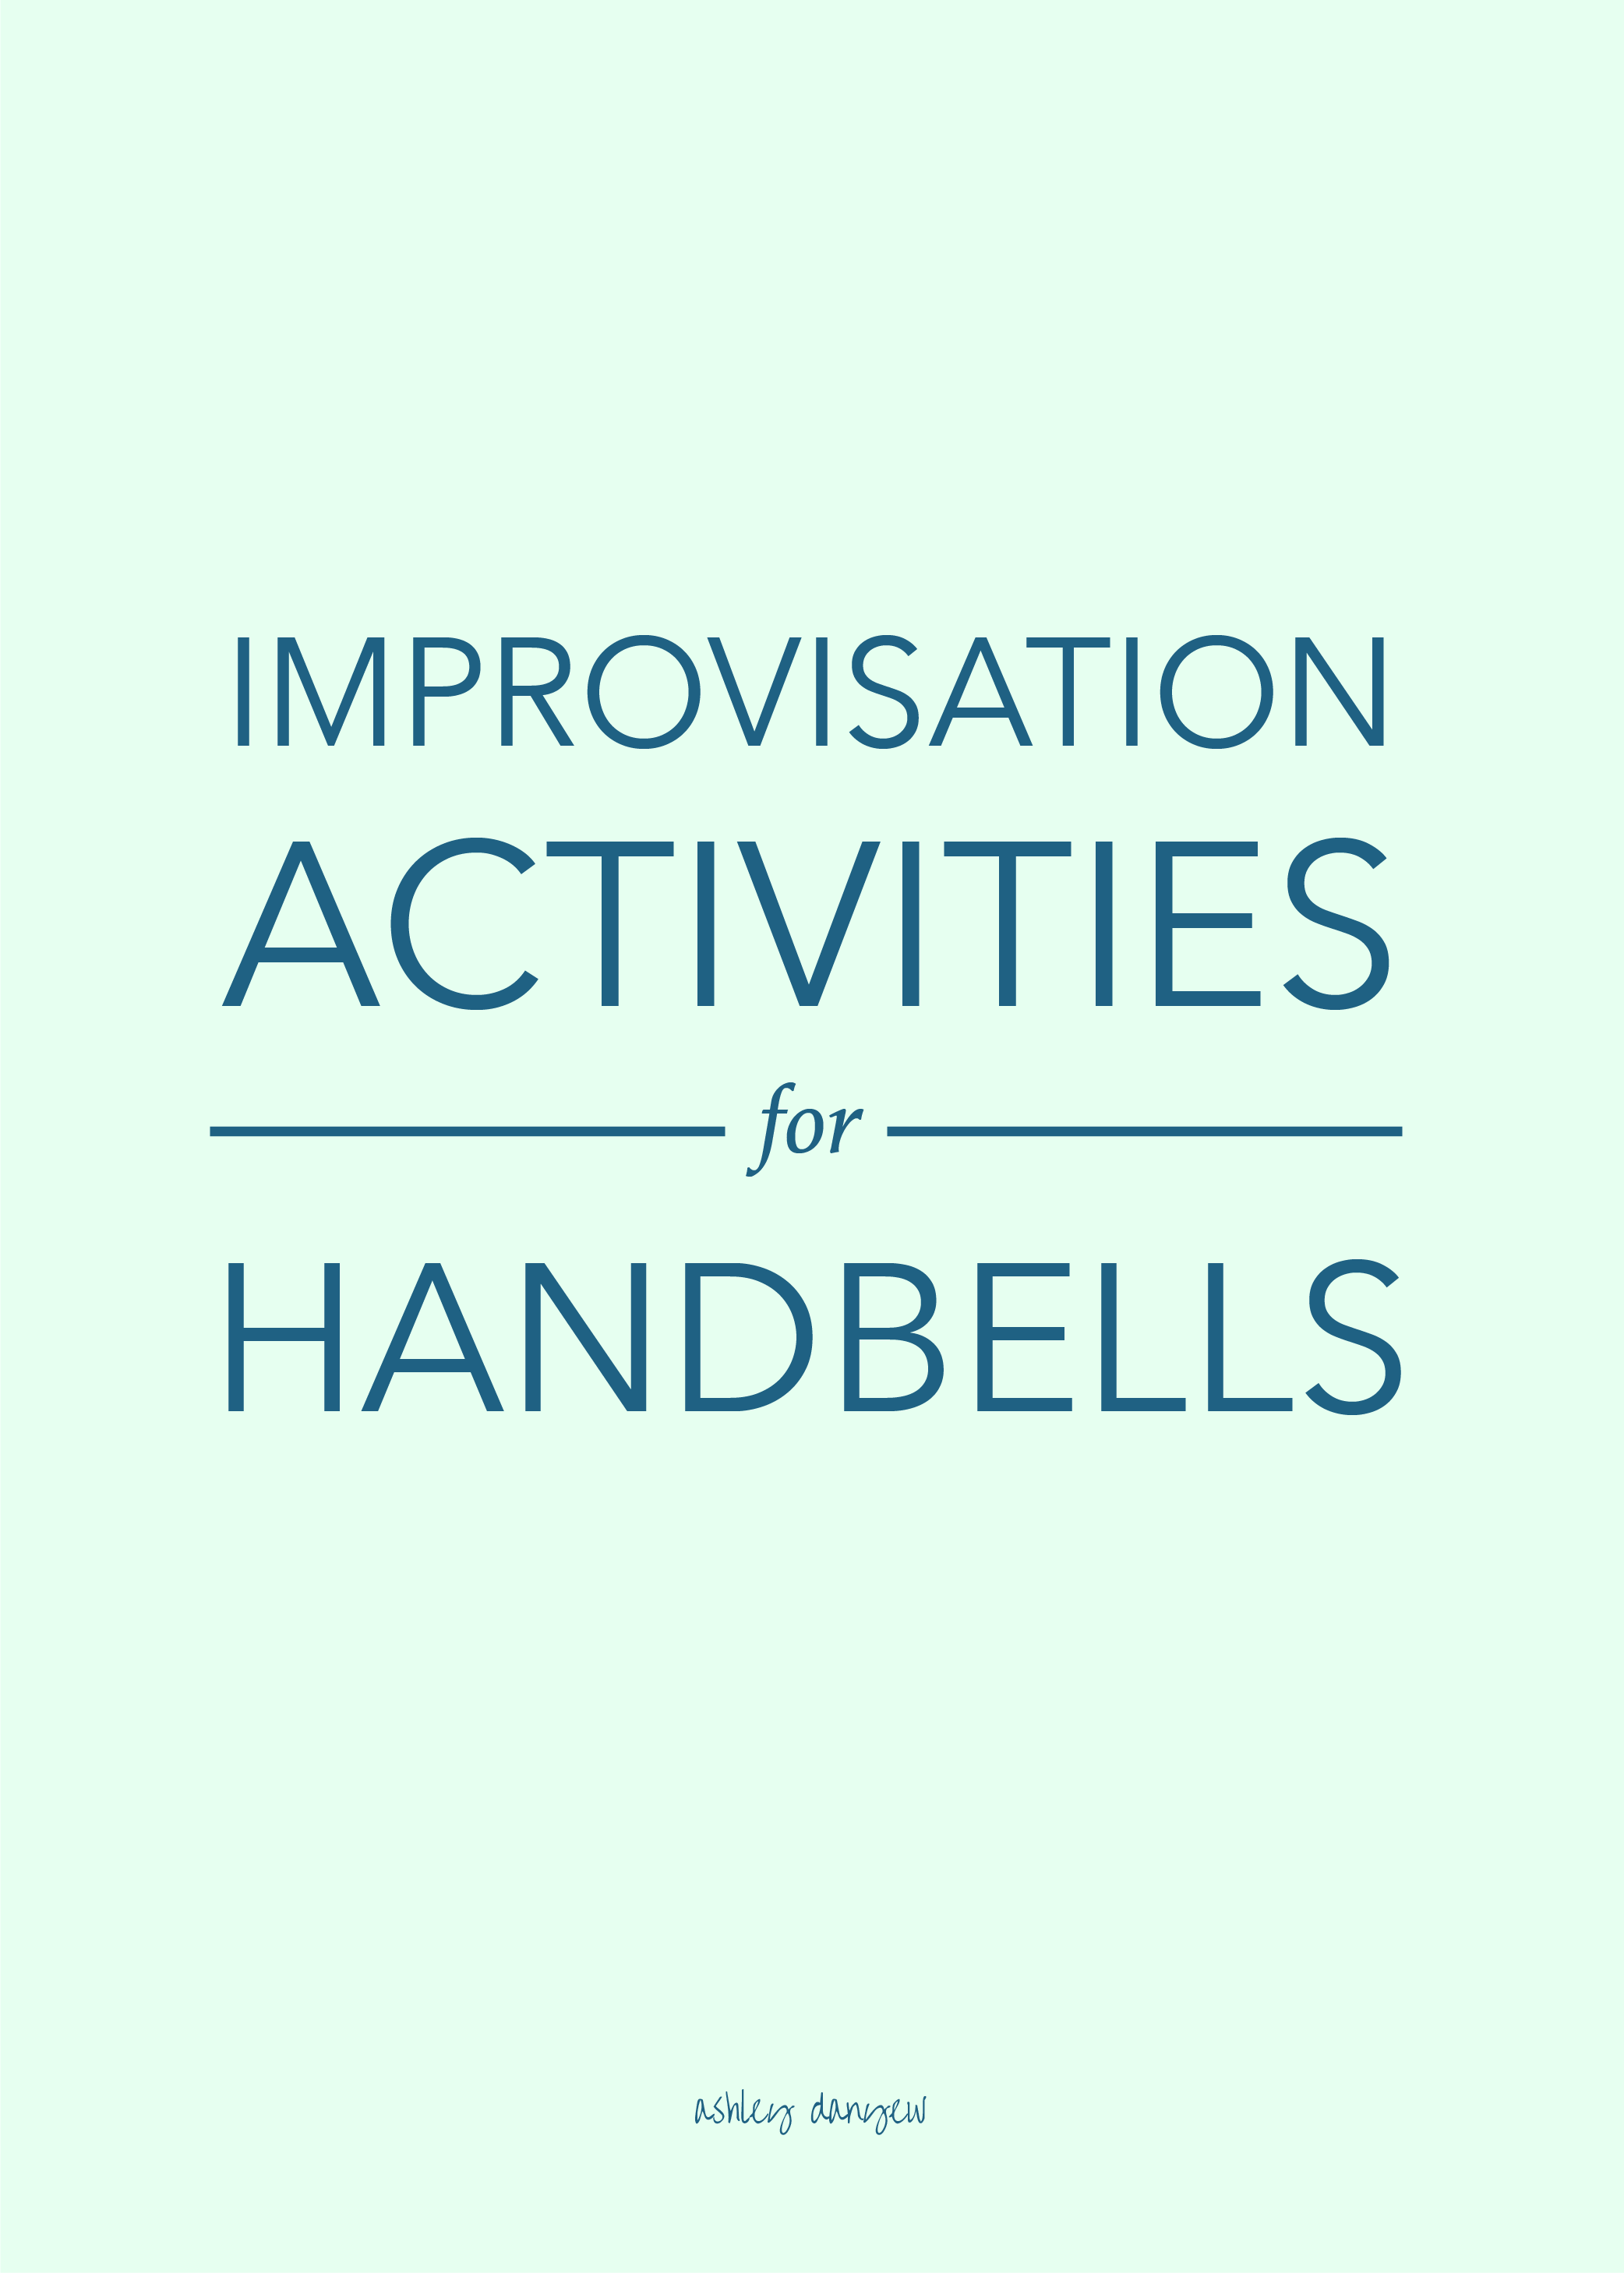 Copy of Improvisation Activities for Handbells